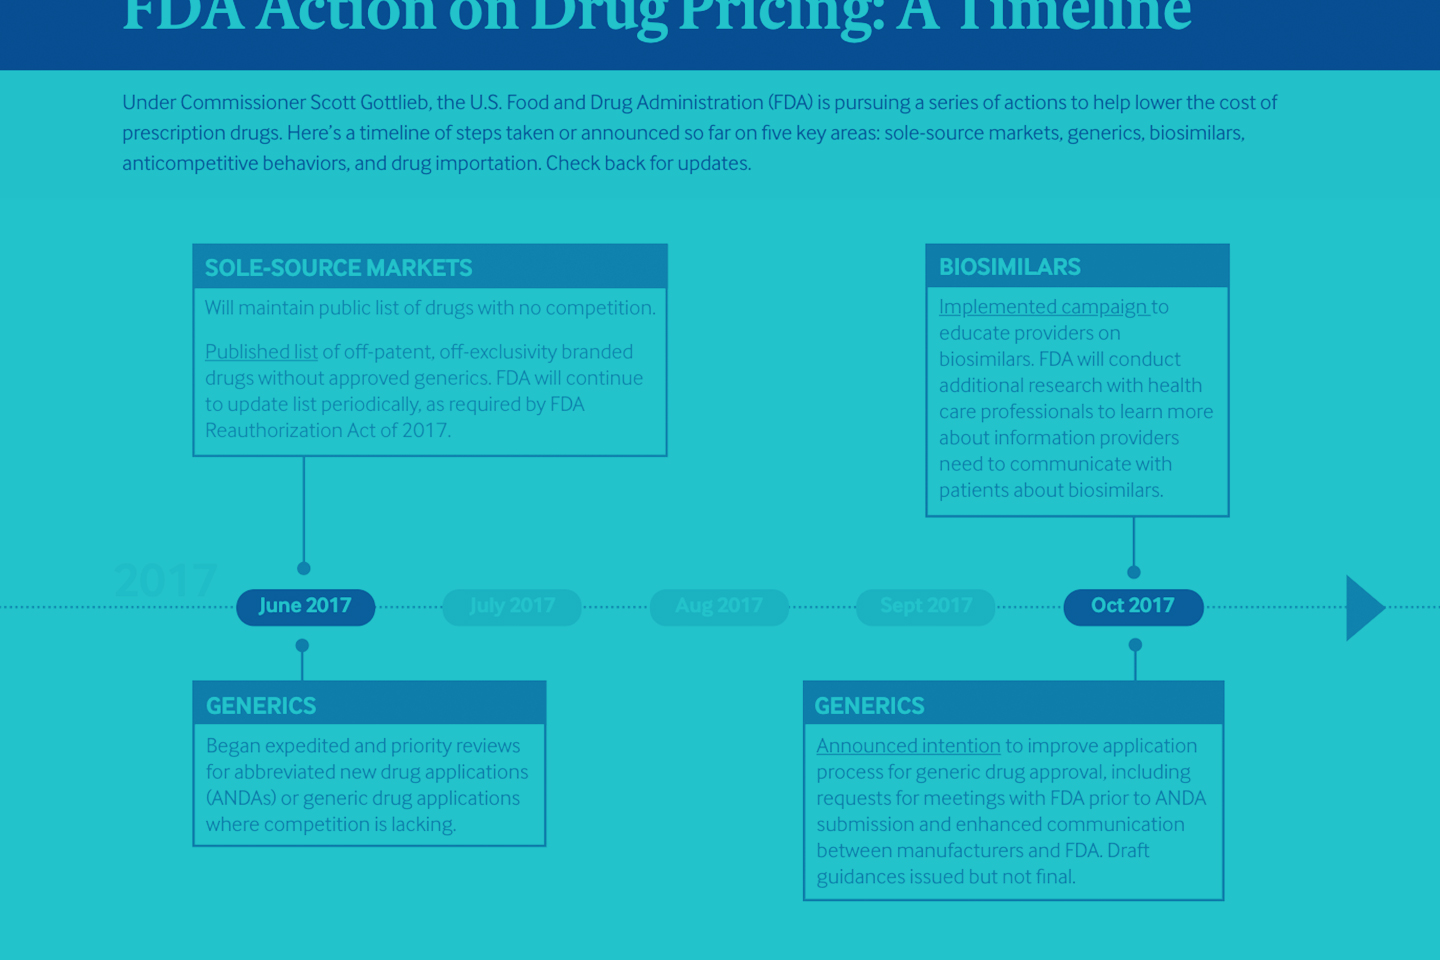 FDA Action on Drug Pricing: A Timeline